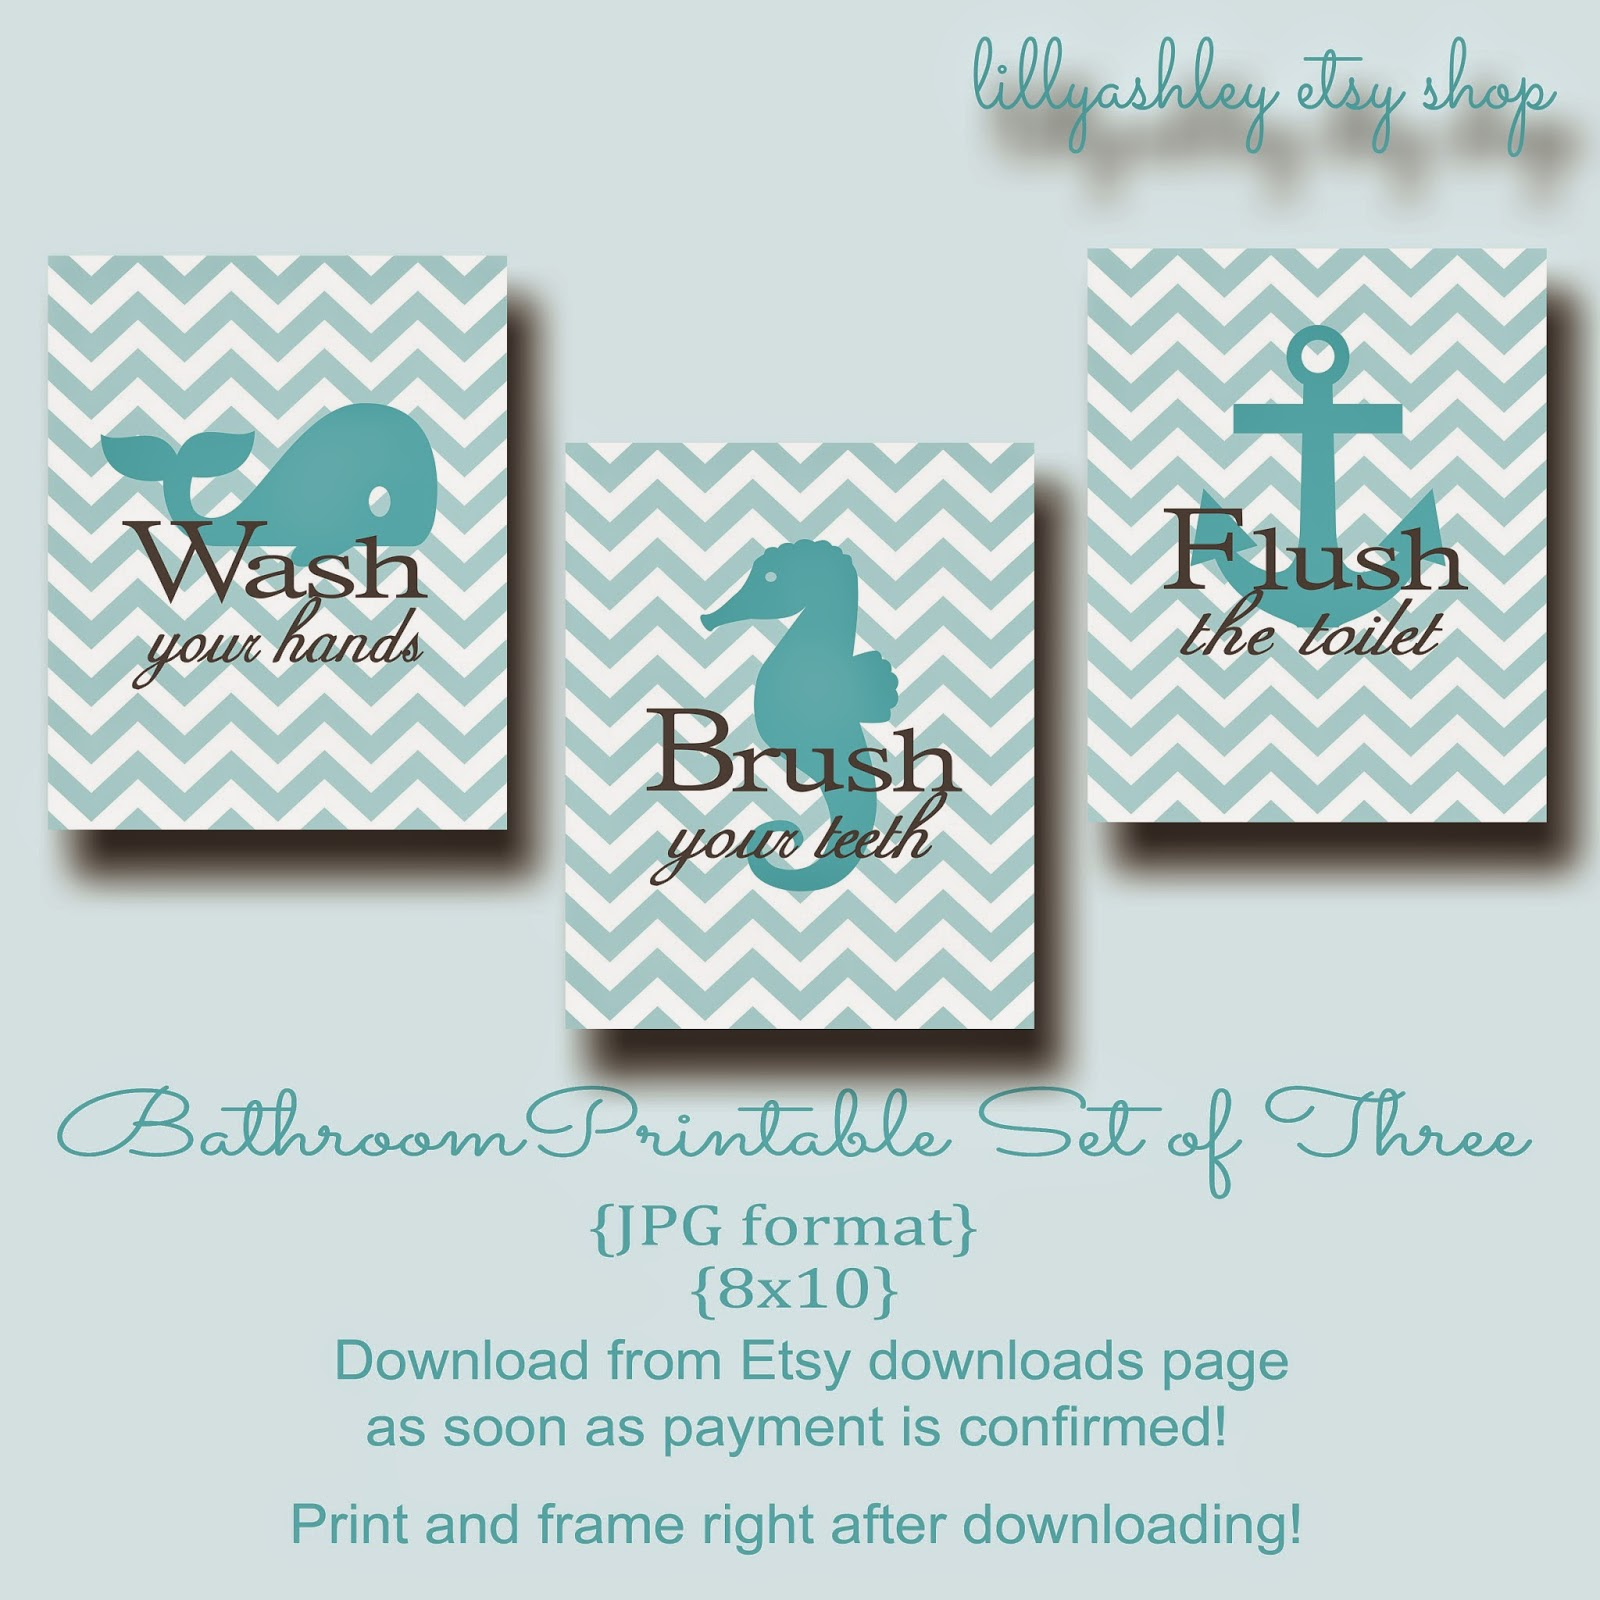 https://www.etsy.com/listing/194941751/8x10-bathroom-printable-set-of-three-jpg?ref=shop_home_feat_3